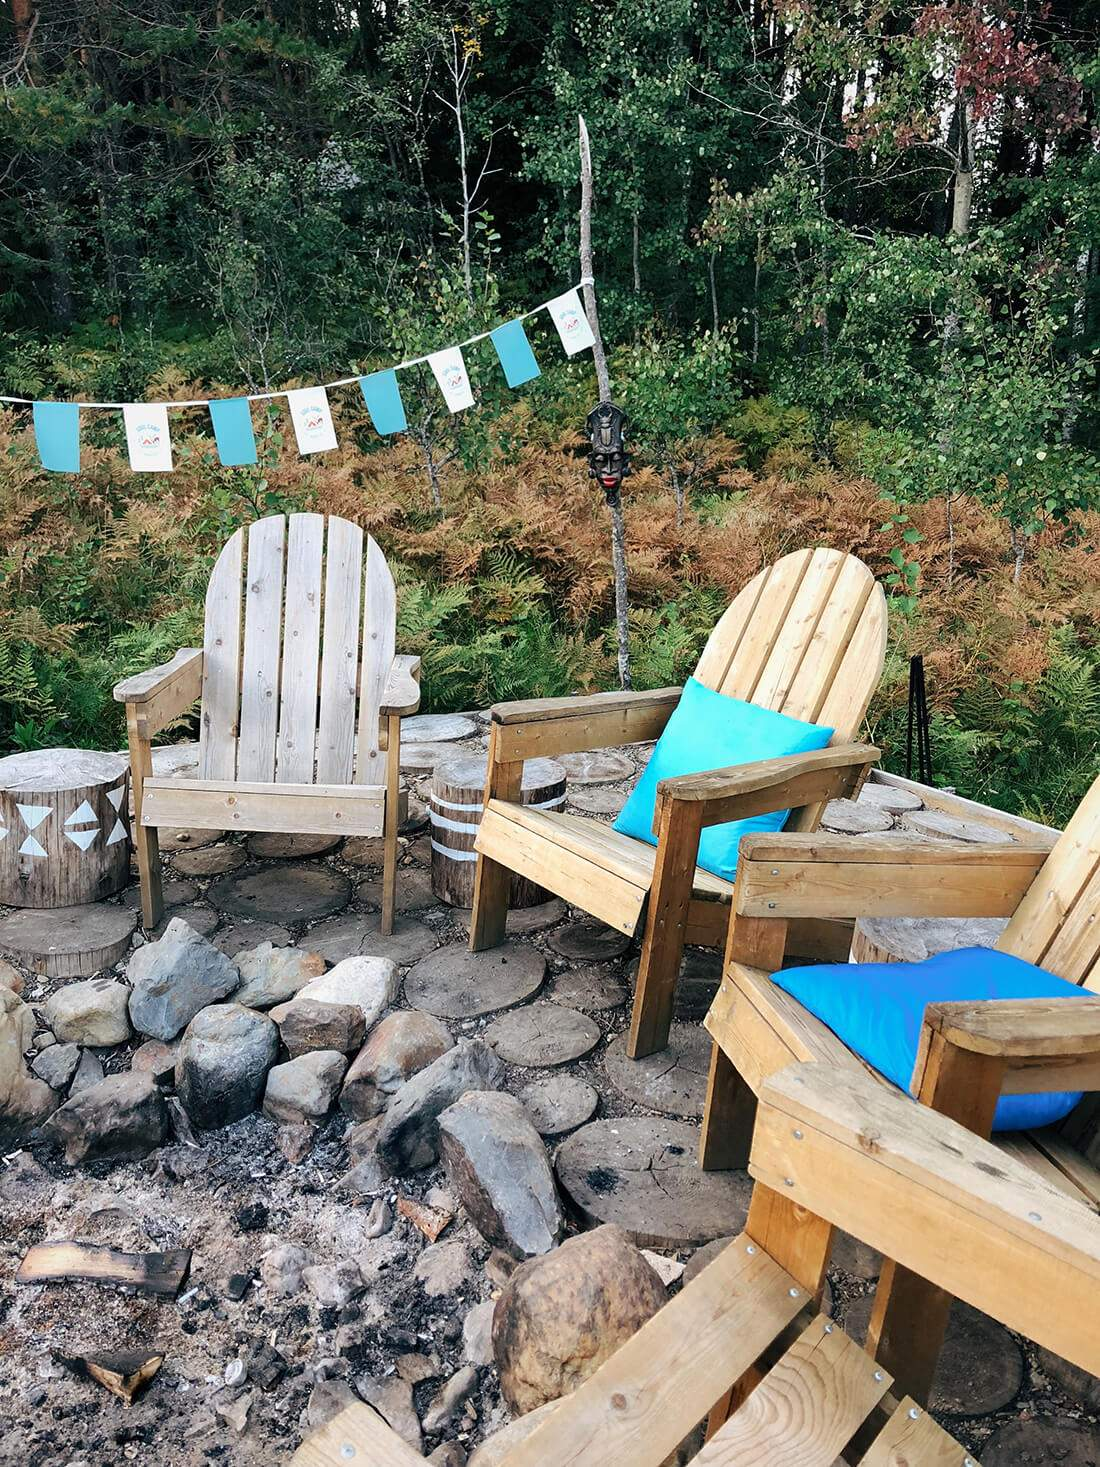 armchairs bonfire buntings